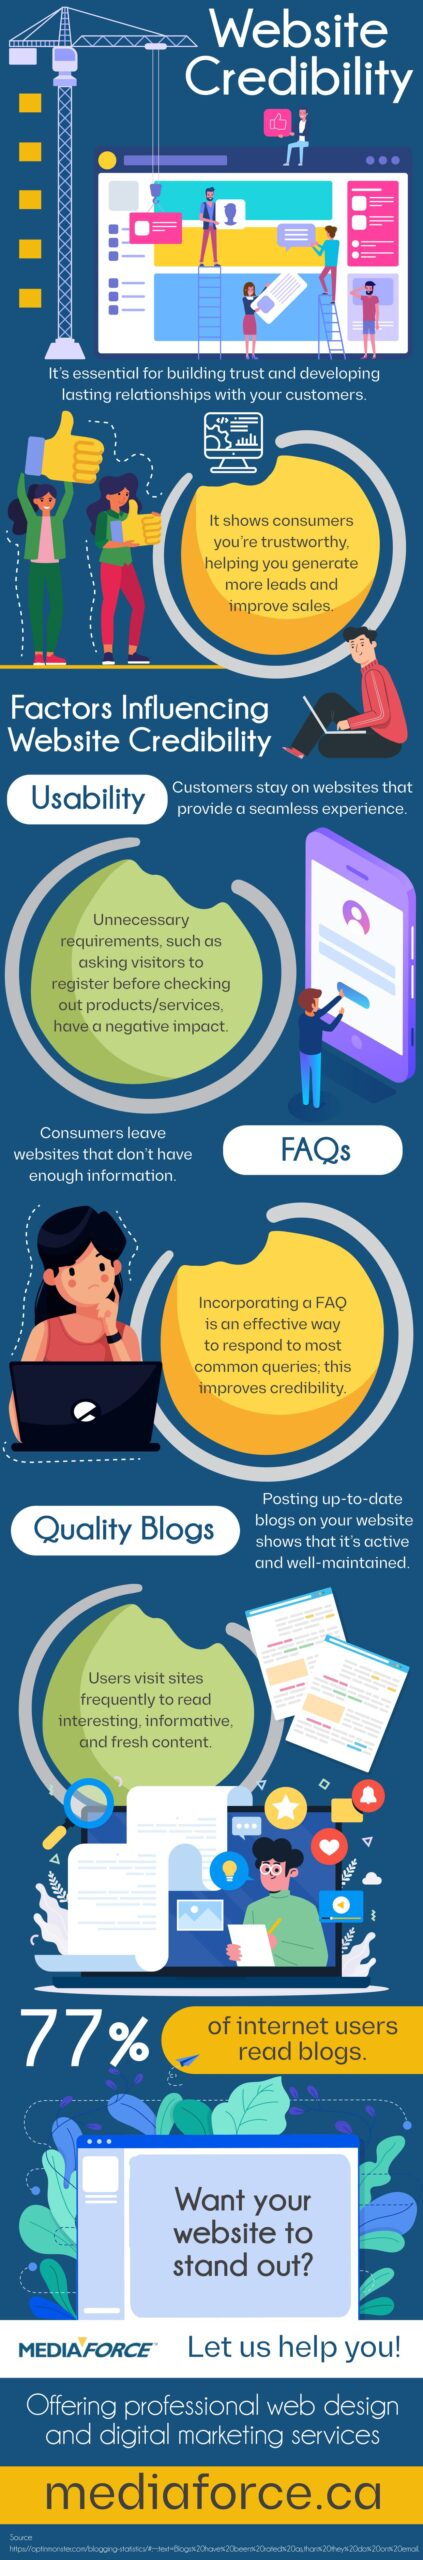 website credibility